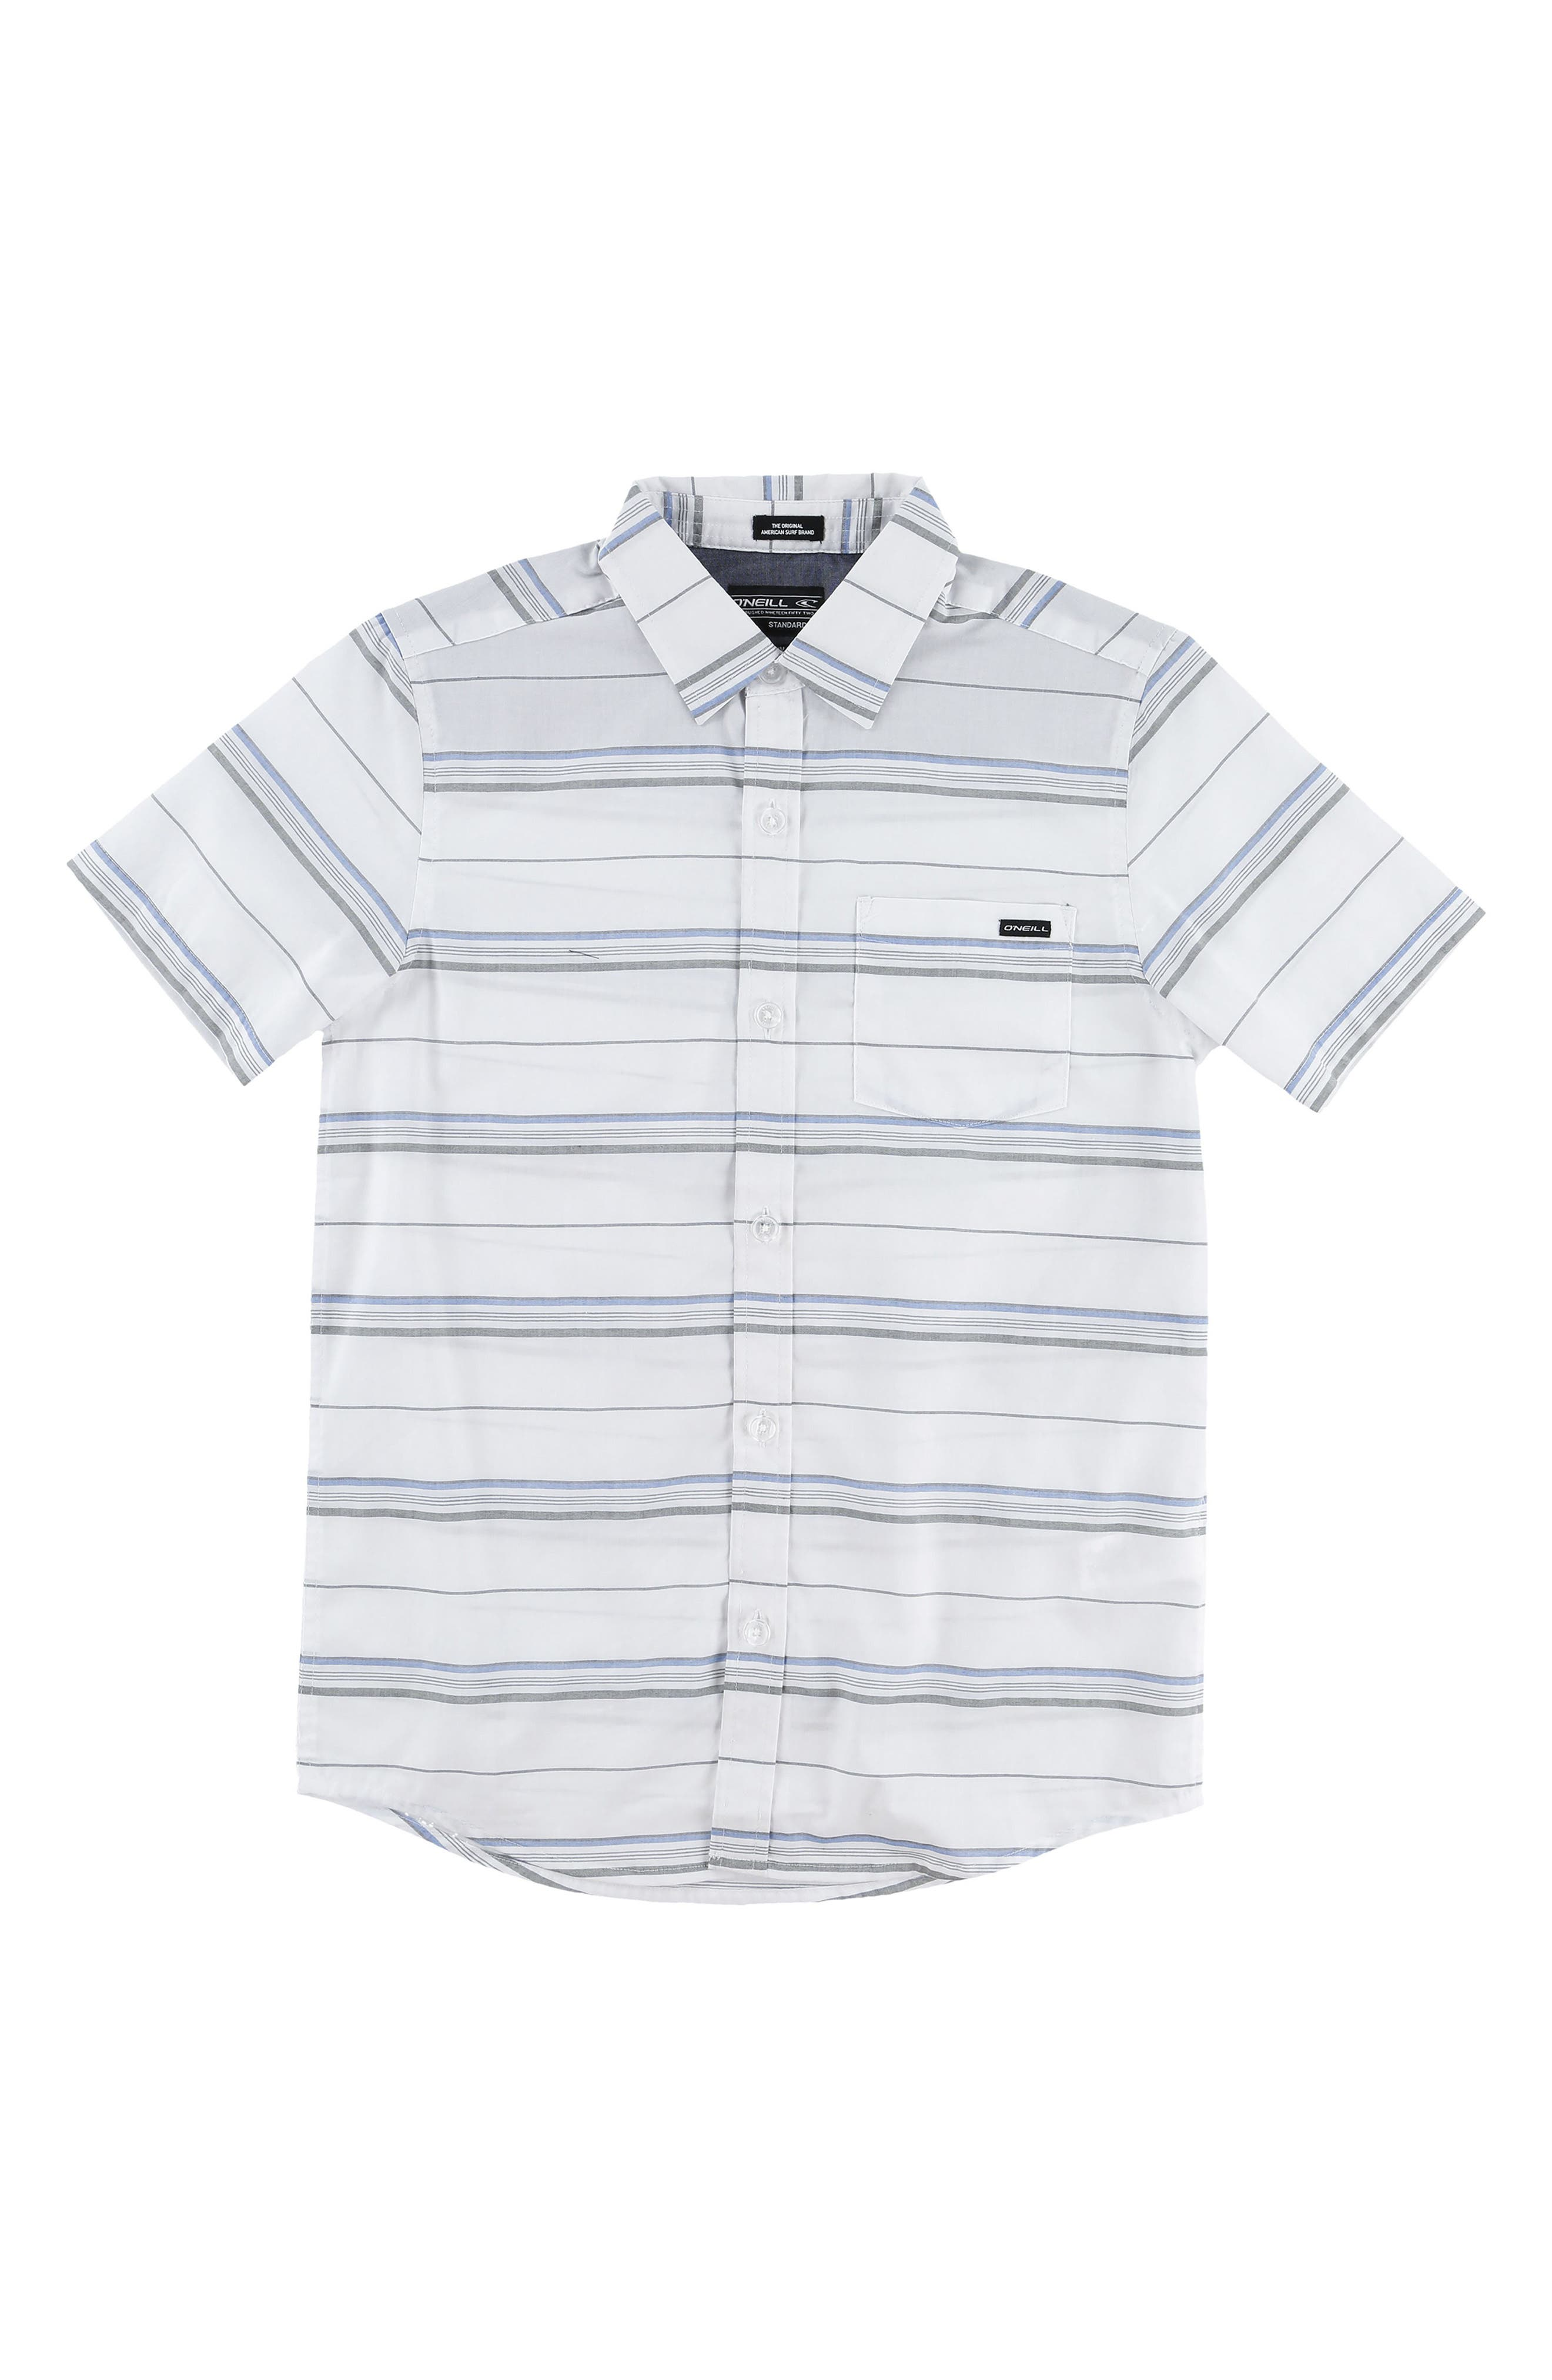 O'Neill Stripe Woven Shirt (Big Boys)